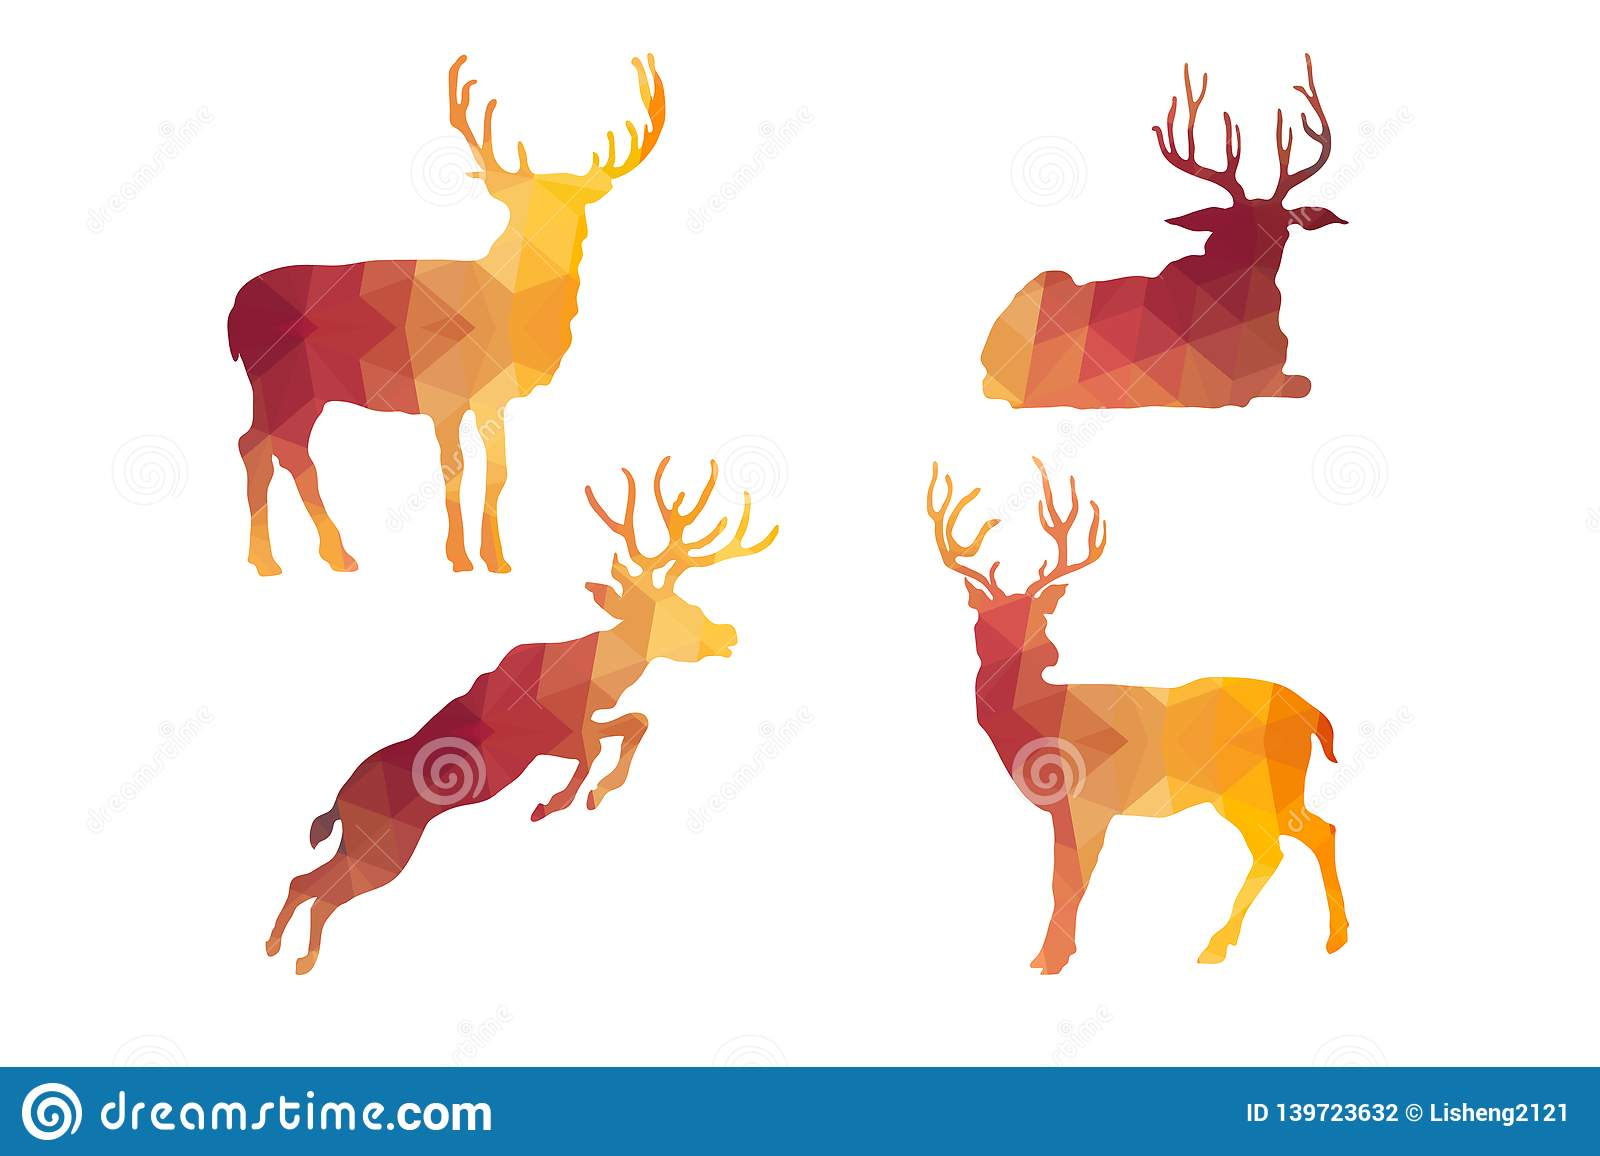 Triangle Polygonal Silhouettes of Bucks